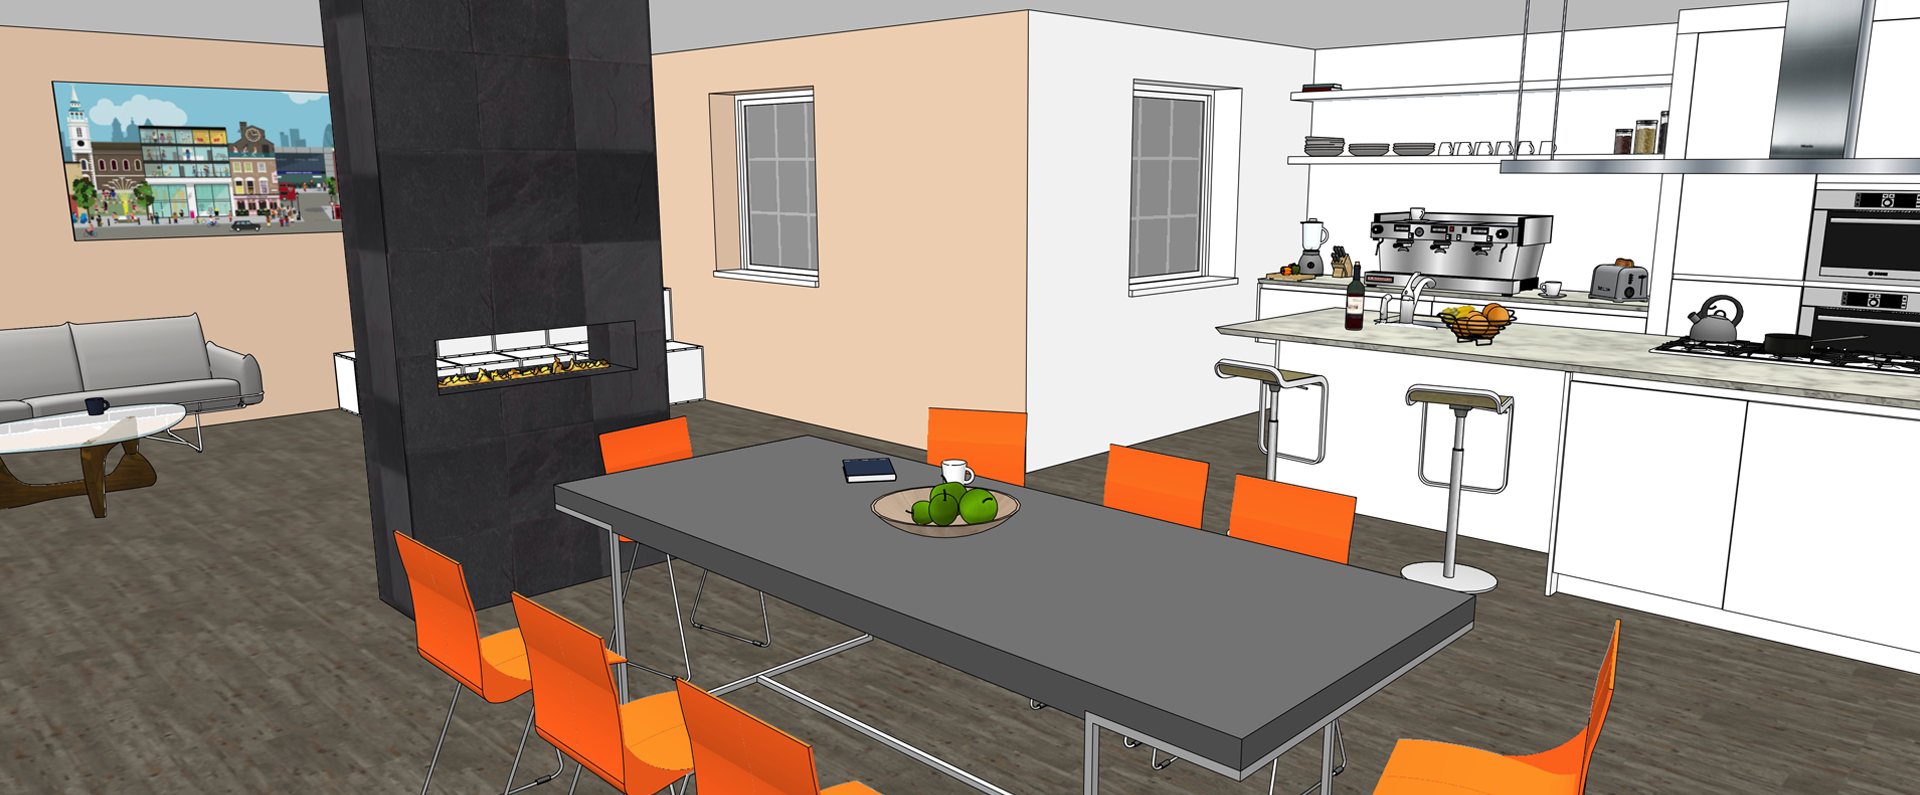 Sketchup for kitchen bath interior design sketchup for Make interior design online